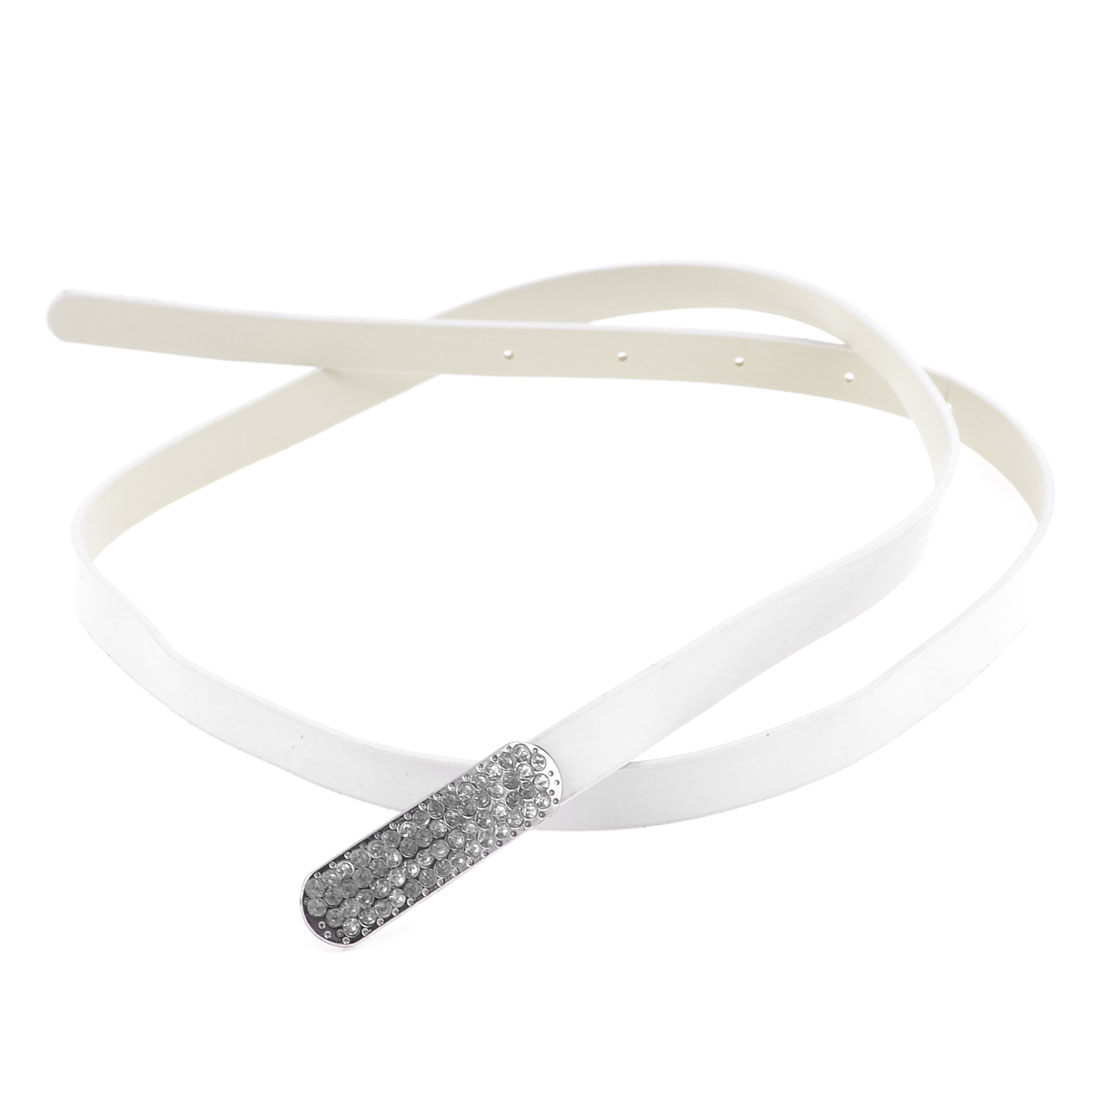 White Slim Faux Leather Multiple Rhinestones Decor Waist Belt for Girls